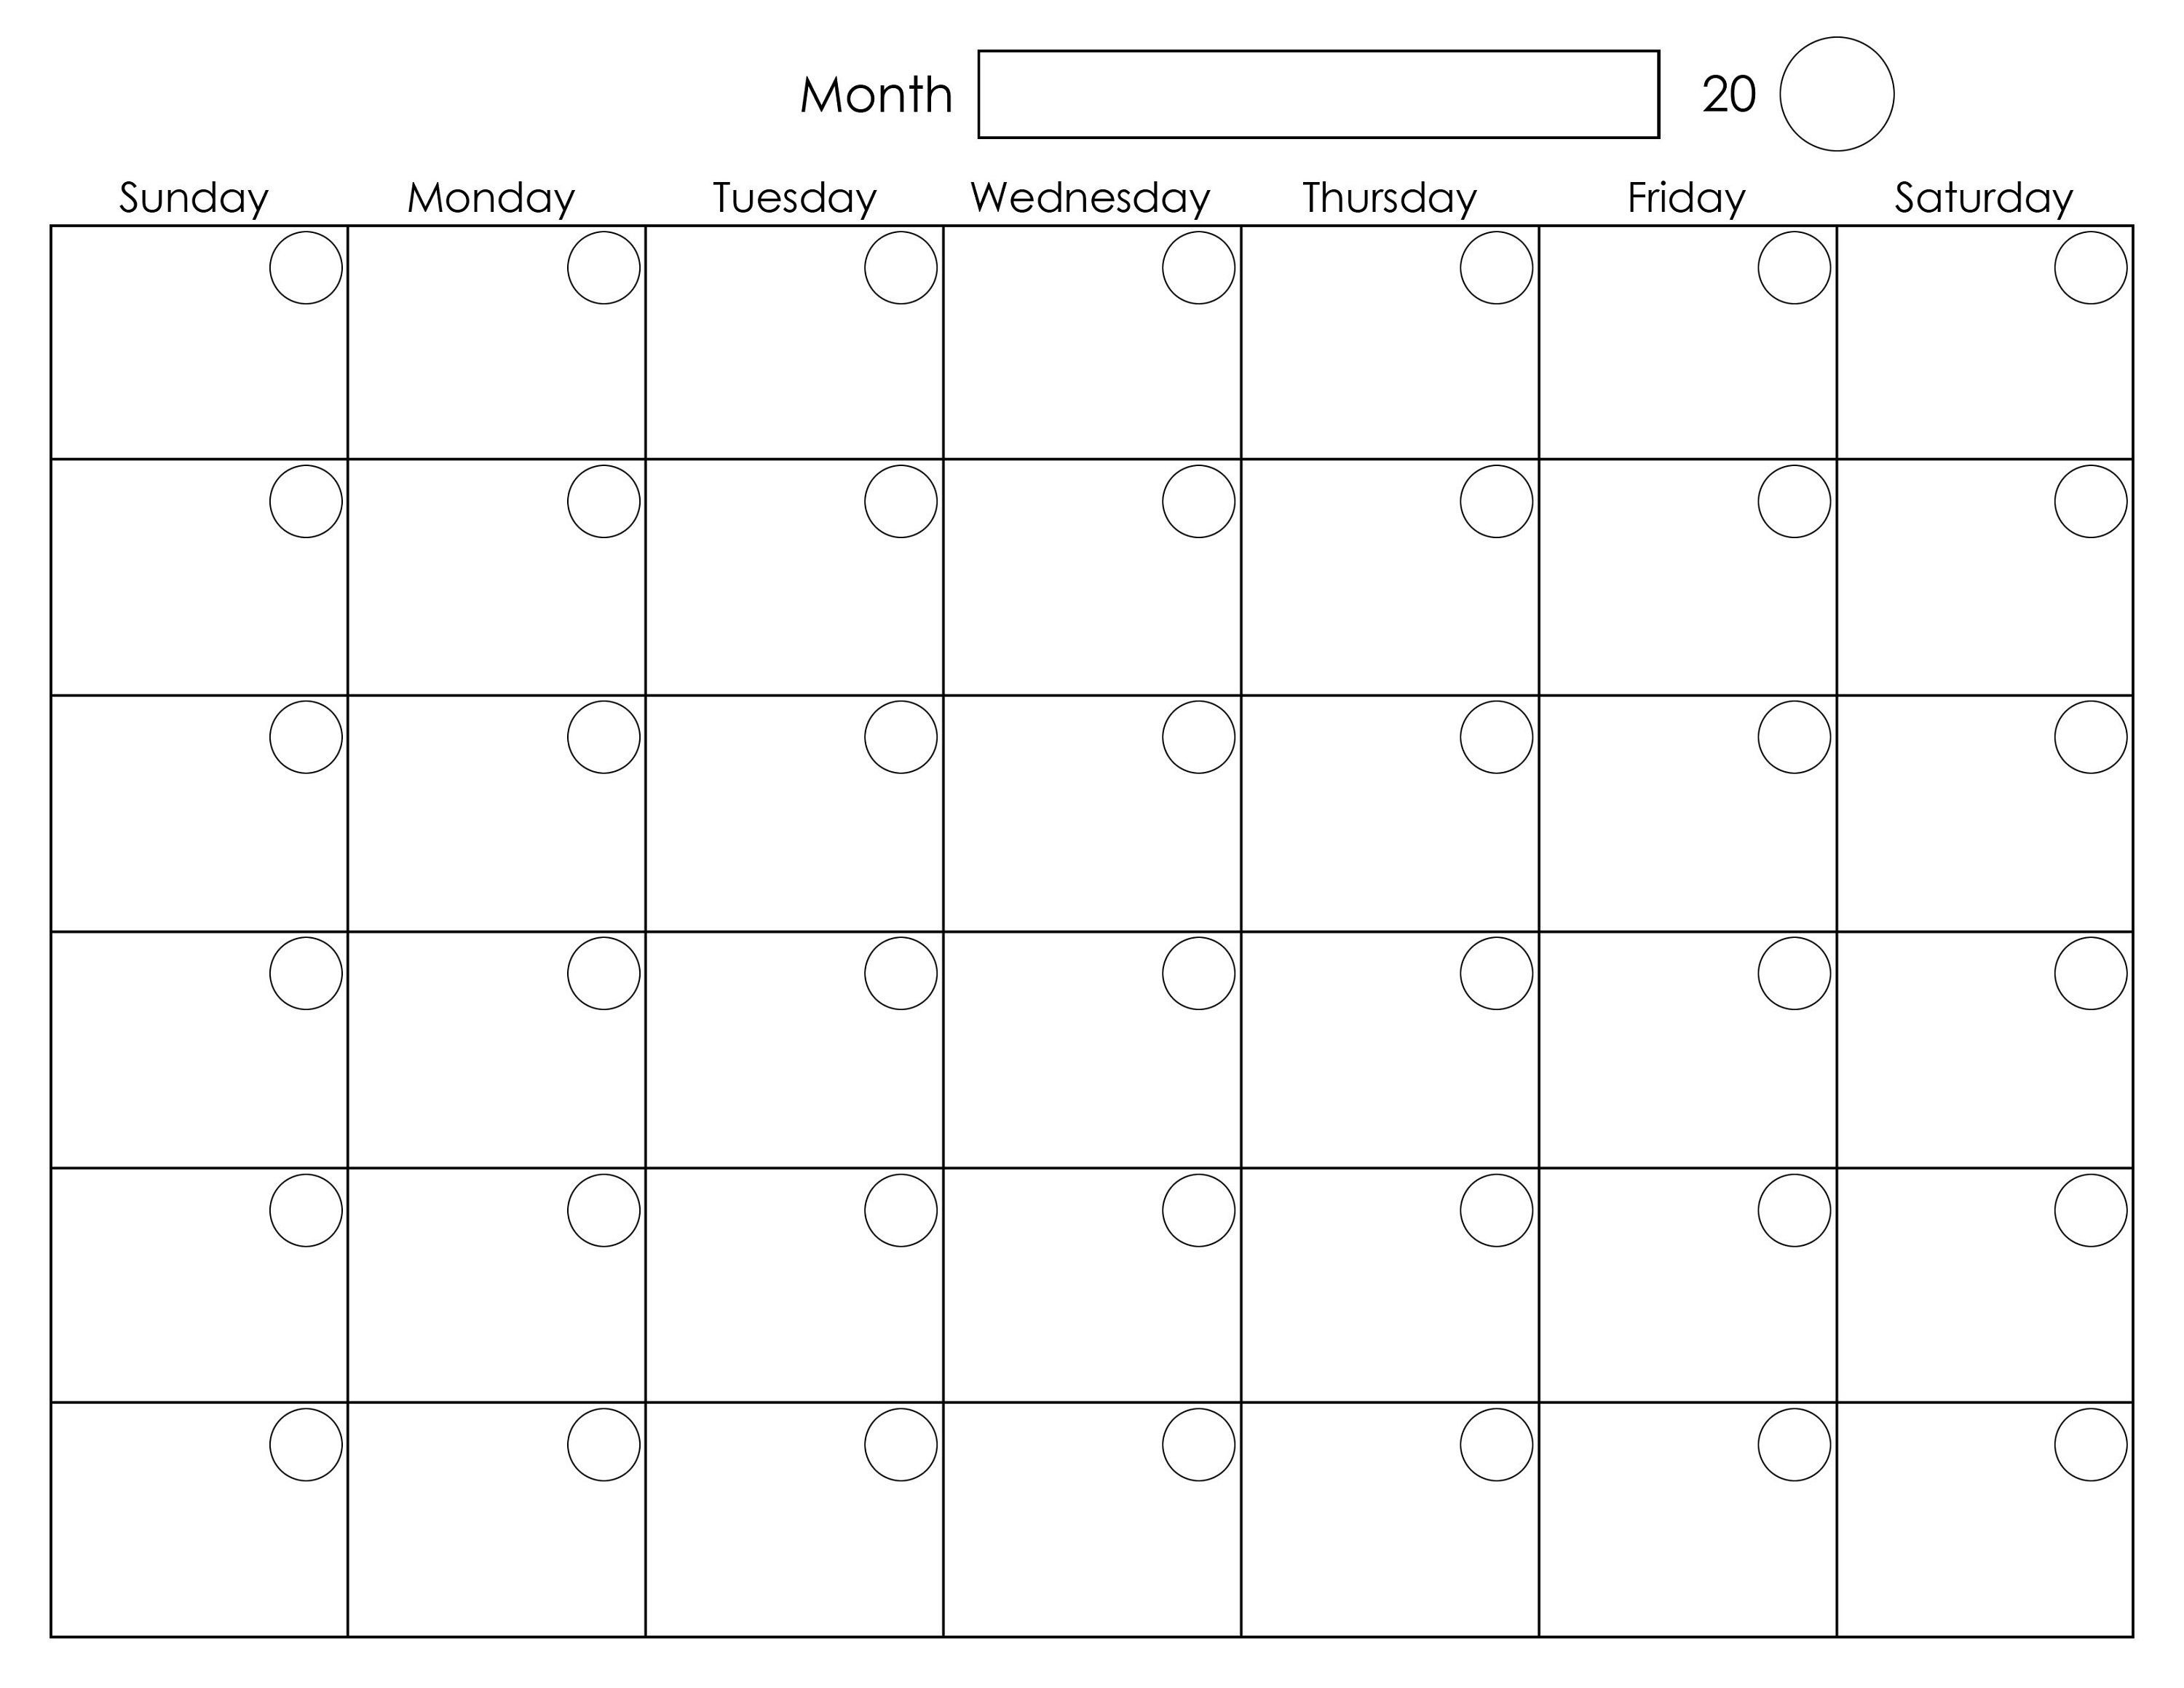 Printable Blank Monthly Calendar Template | Thekpark-Hadong intended for Blank Printable Mini Calendar